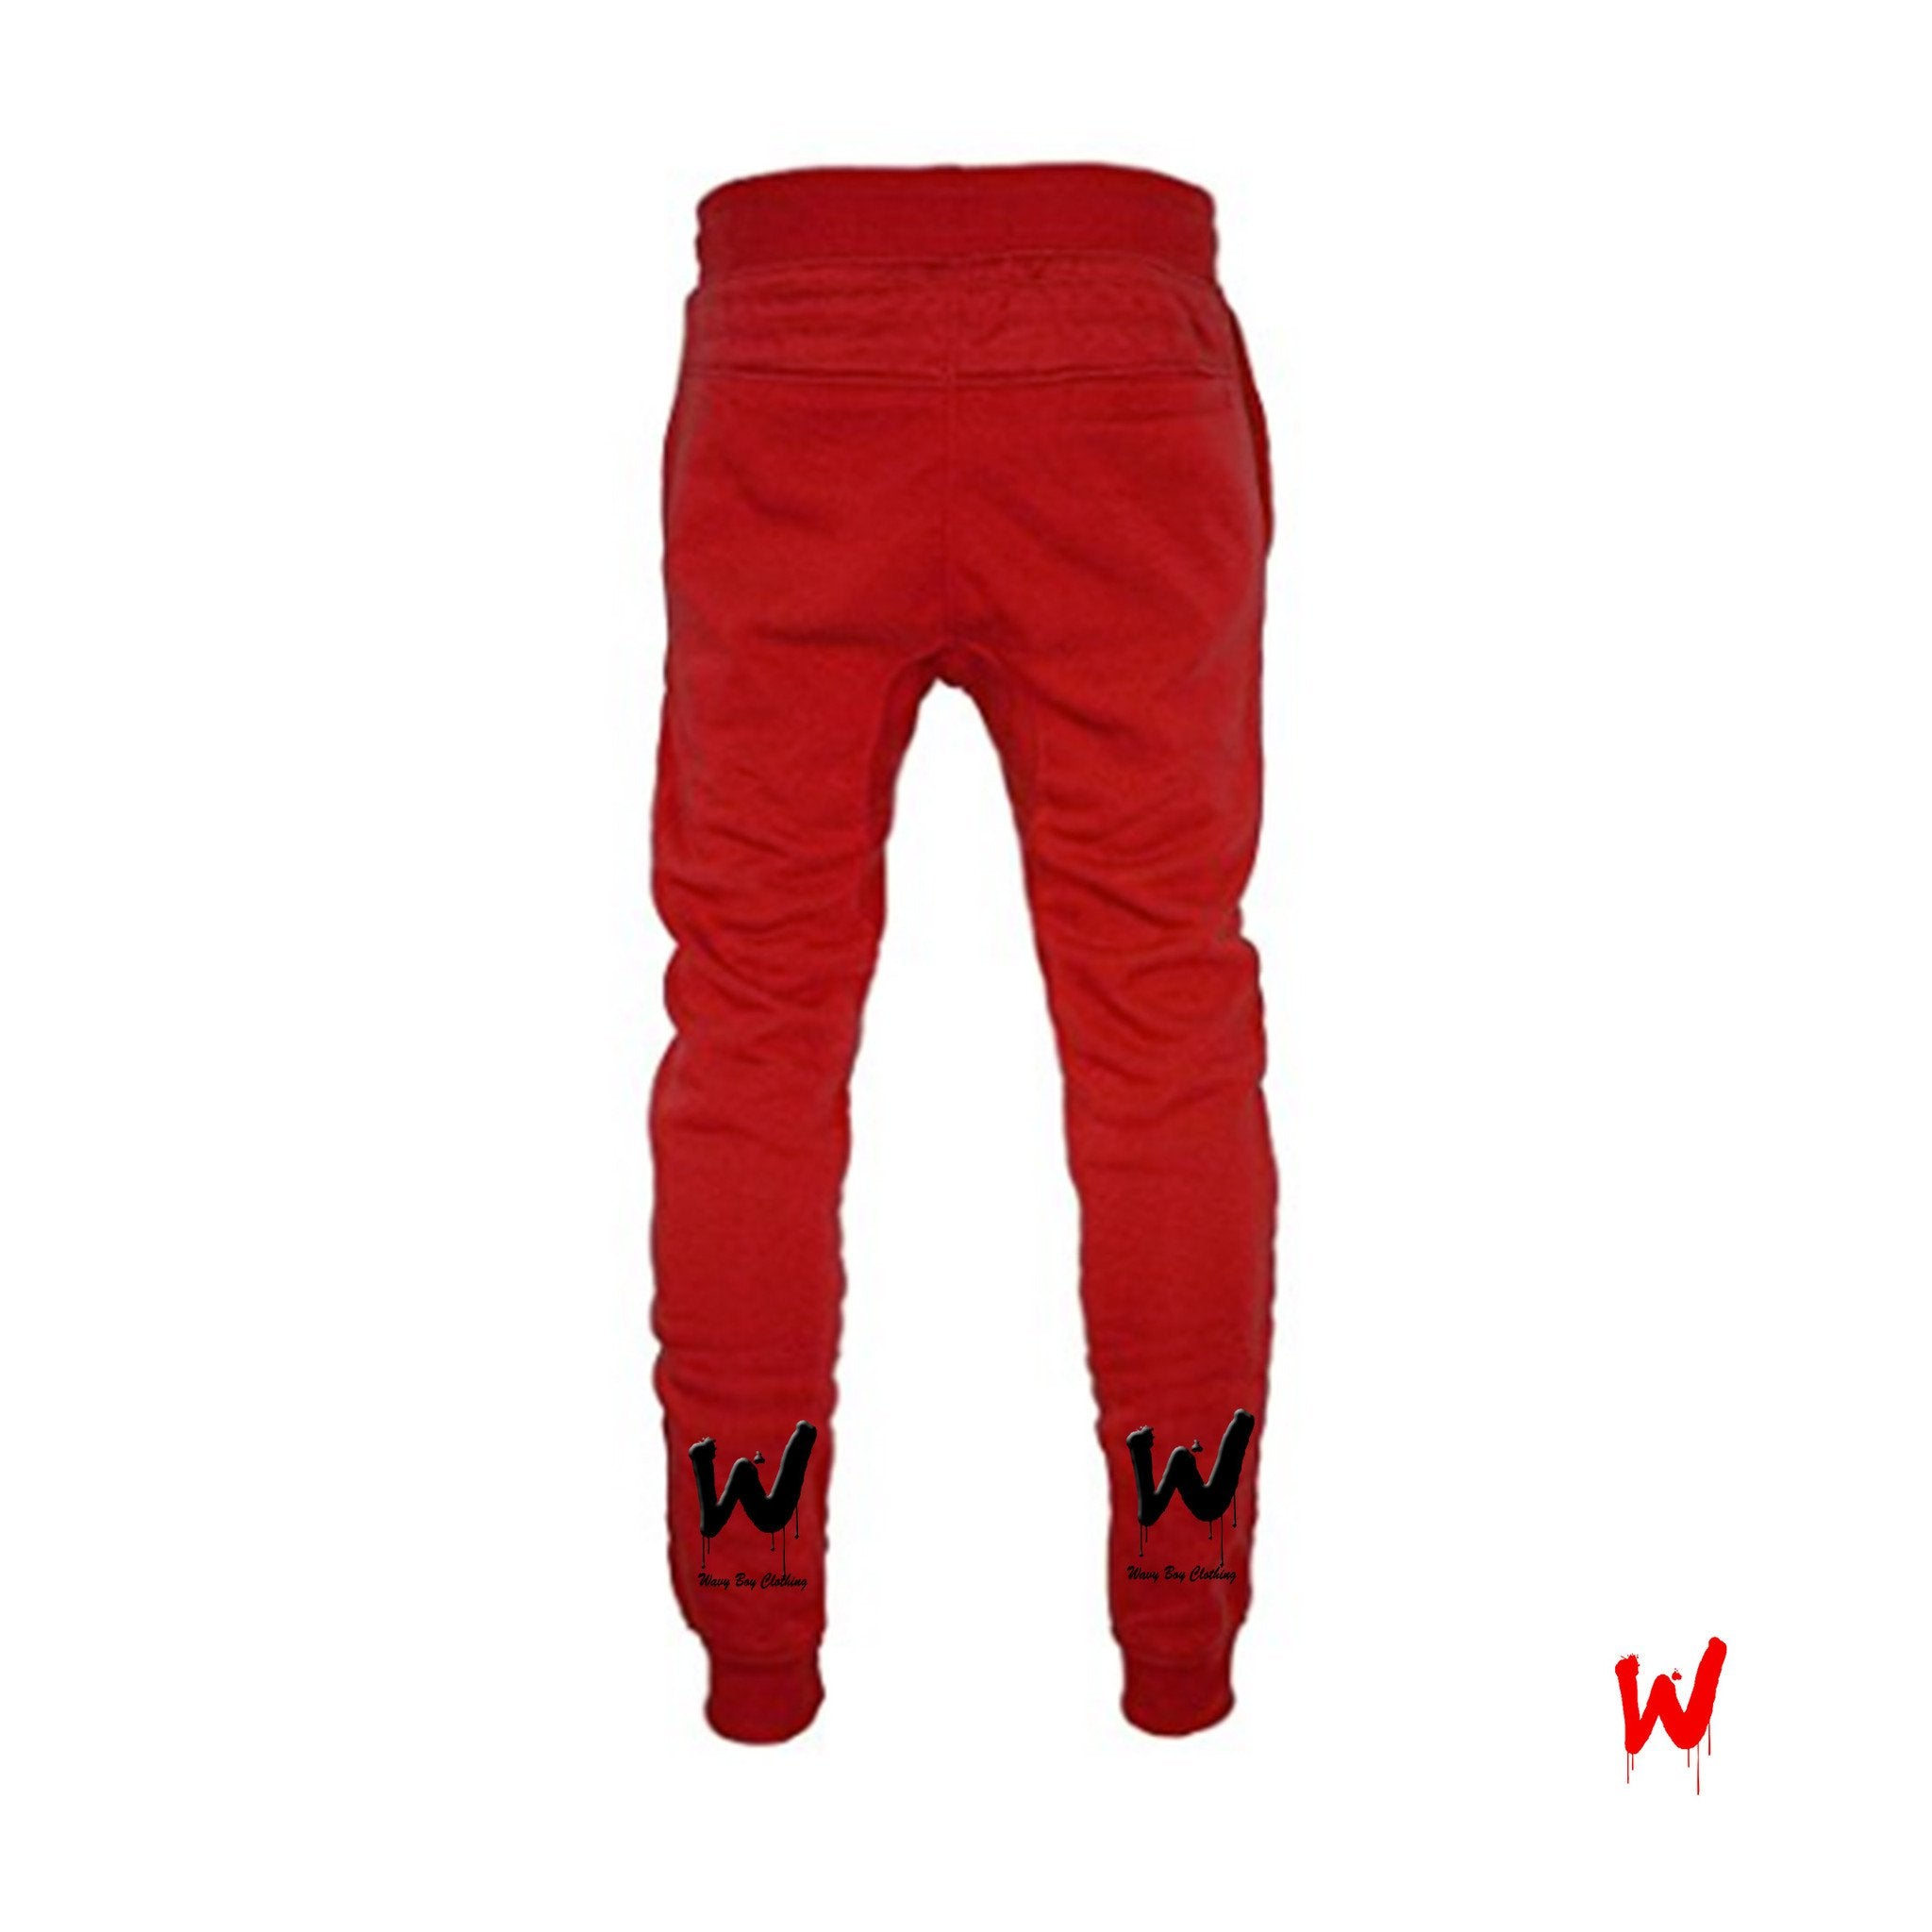 "Wavy Boy ""Drippy W"" joggers - Wavy Boy Clothing  - 2"